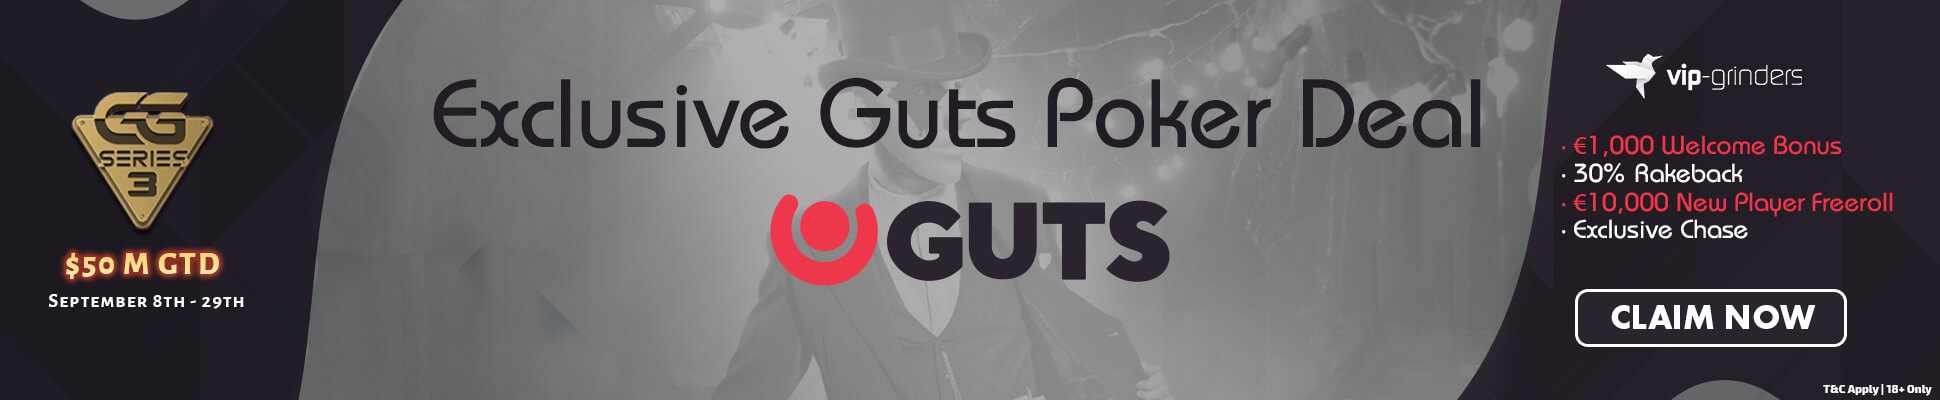 guts-poker-slider-September-1940x400